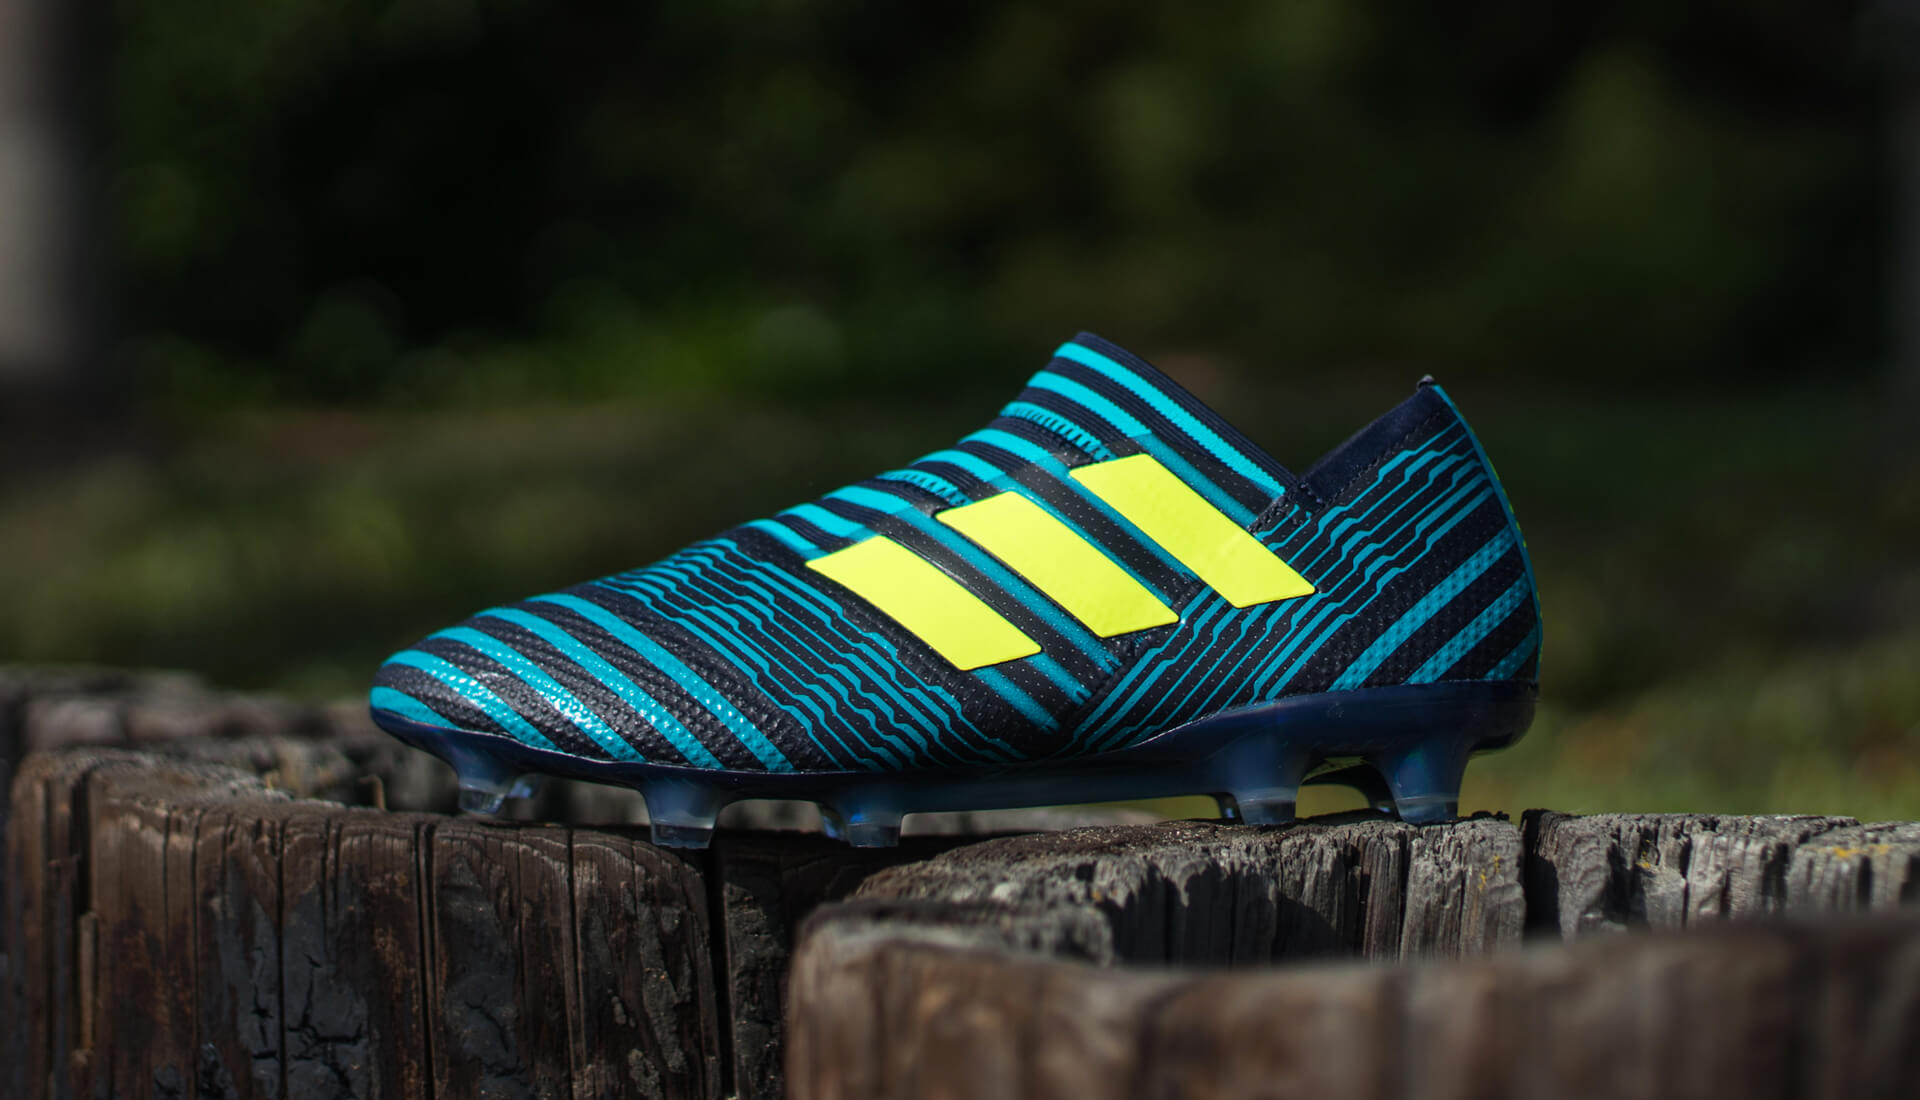 Adidas soccer boots messi